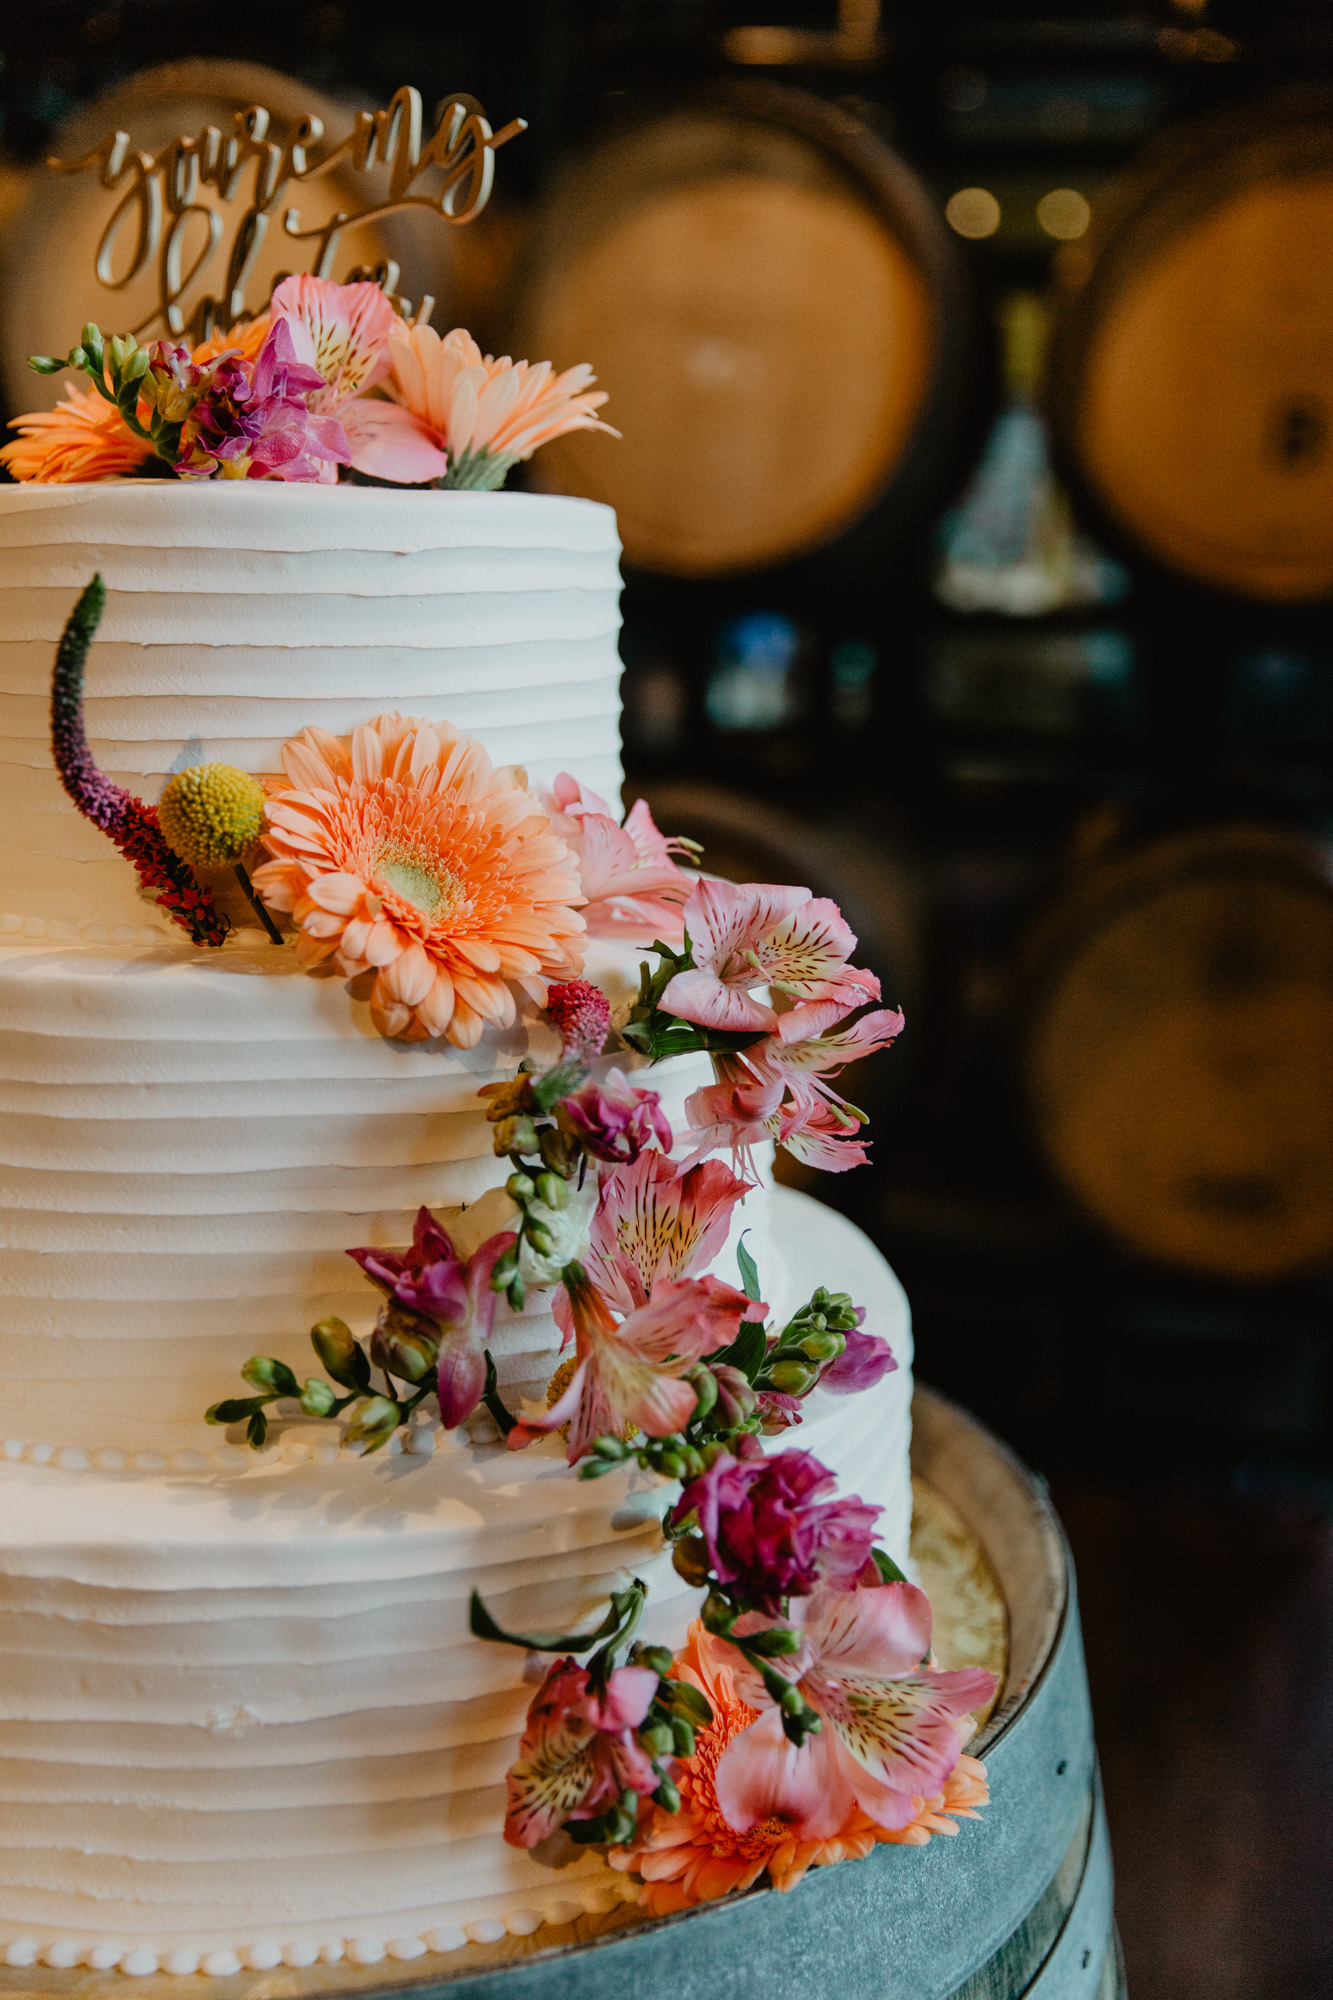 Colorful orange and pink florals on a wedding cake designed by Konditor Meister